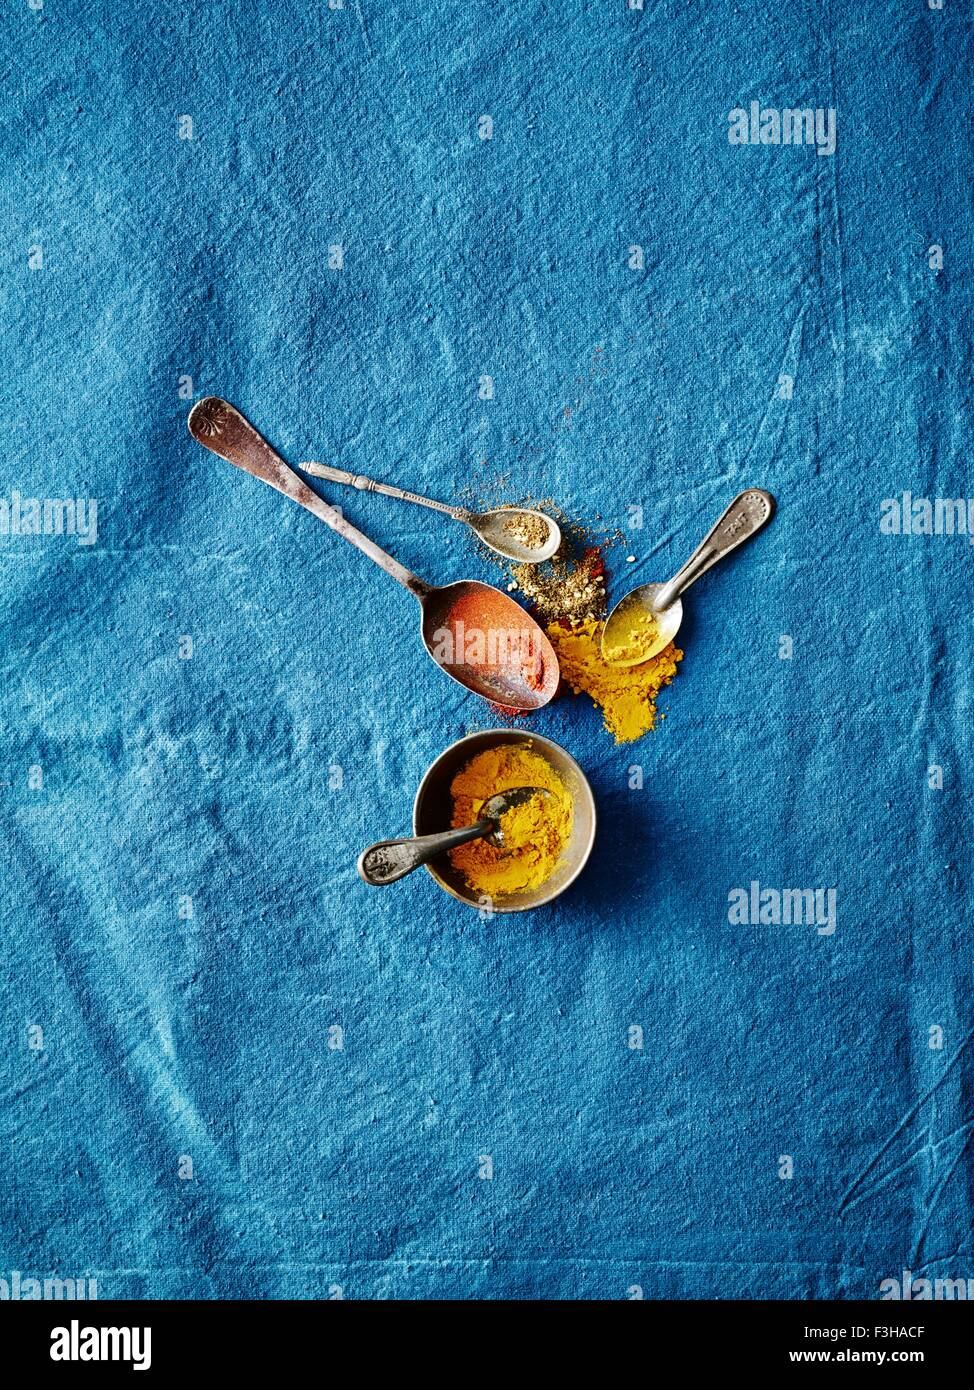 Overhead view of spoonfuls of turmeric and paprika spices on blue background - Stock Image